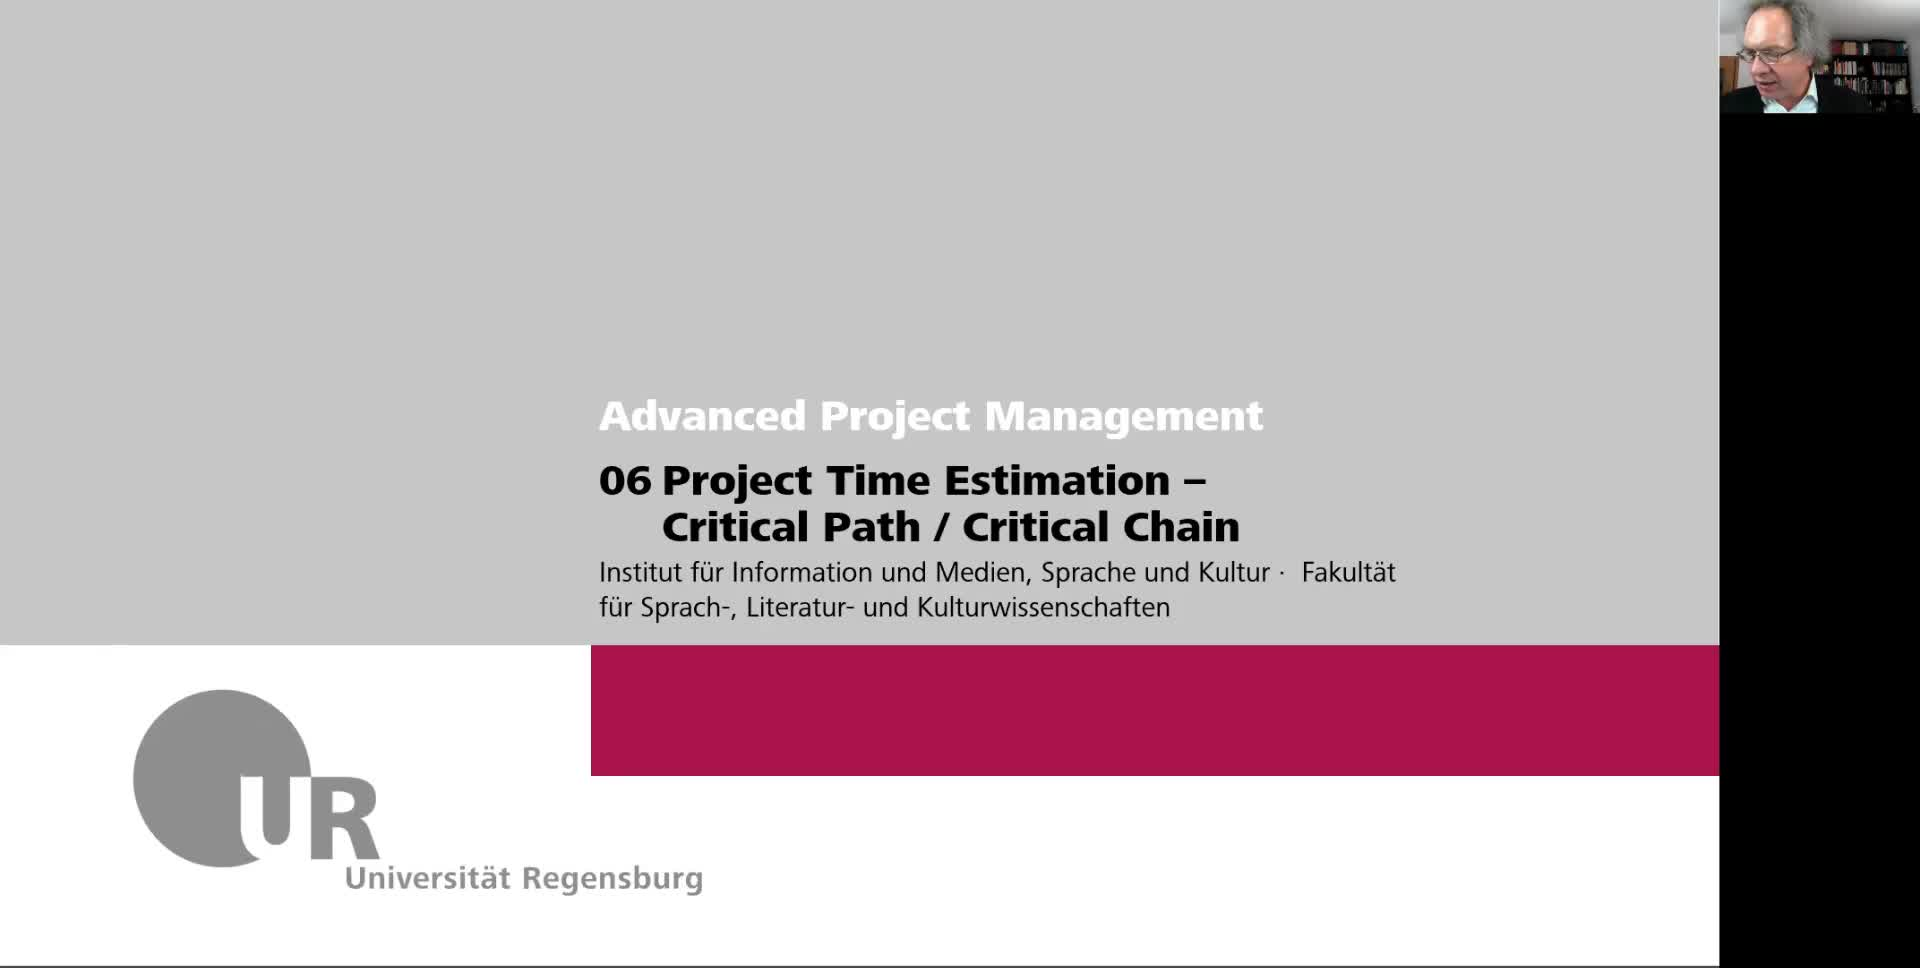 Advanced IT Project Management WS 2021: 06 Project Time Estimation - Critical Path / Critical Chain